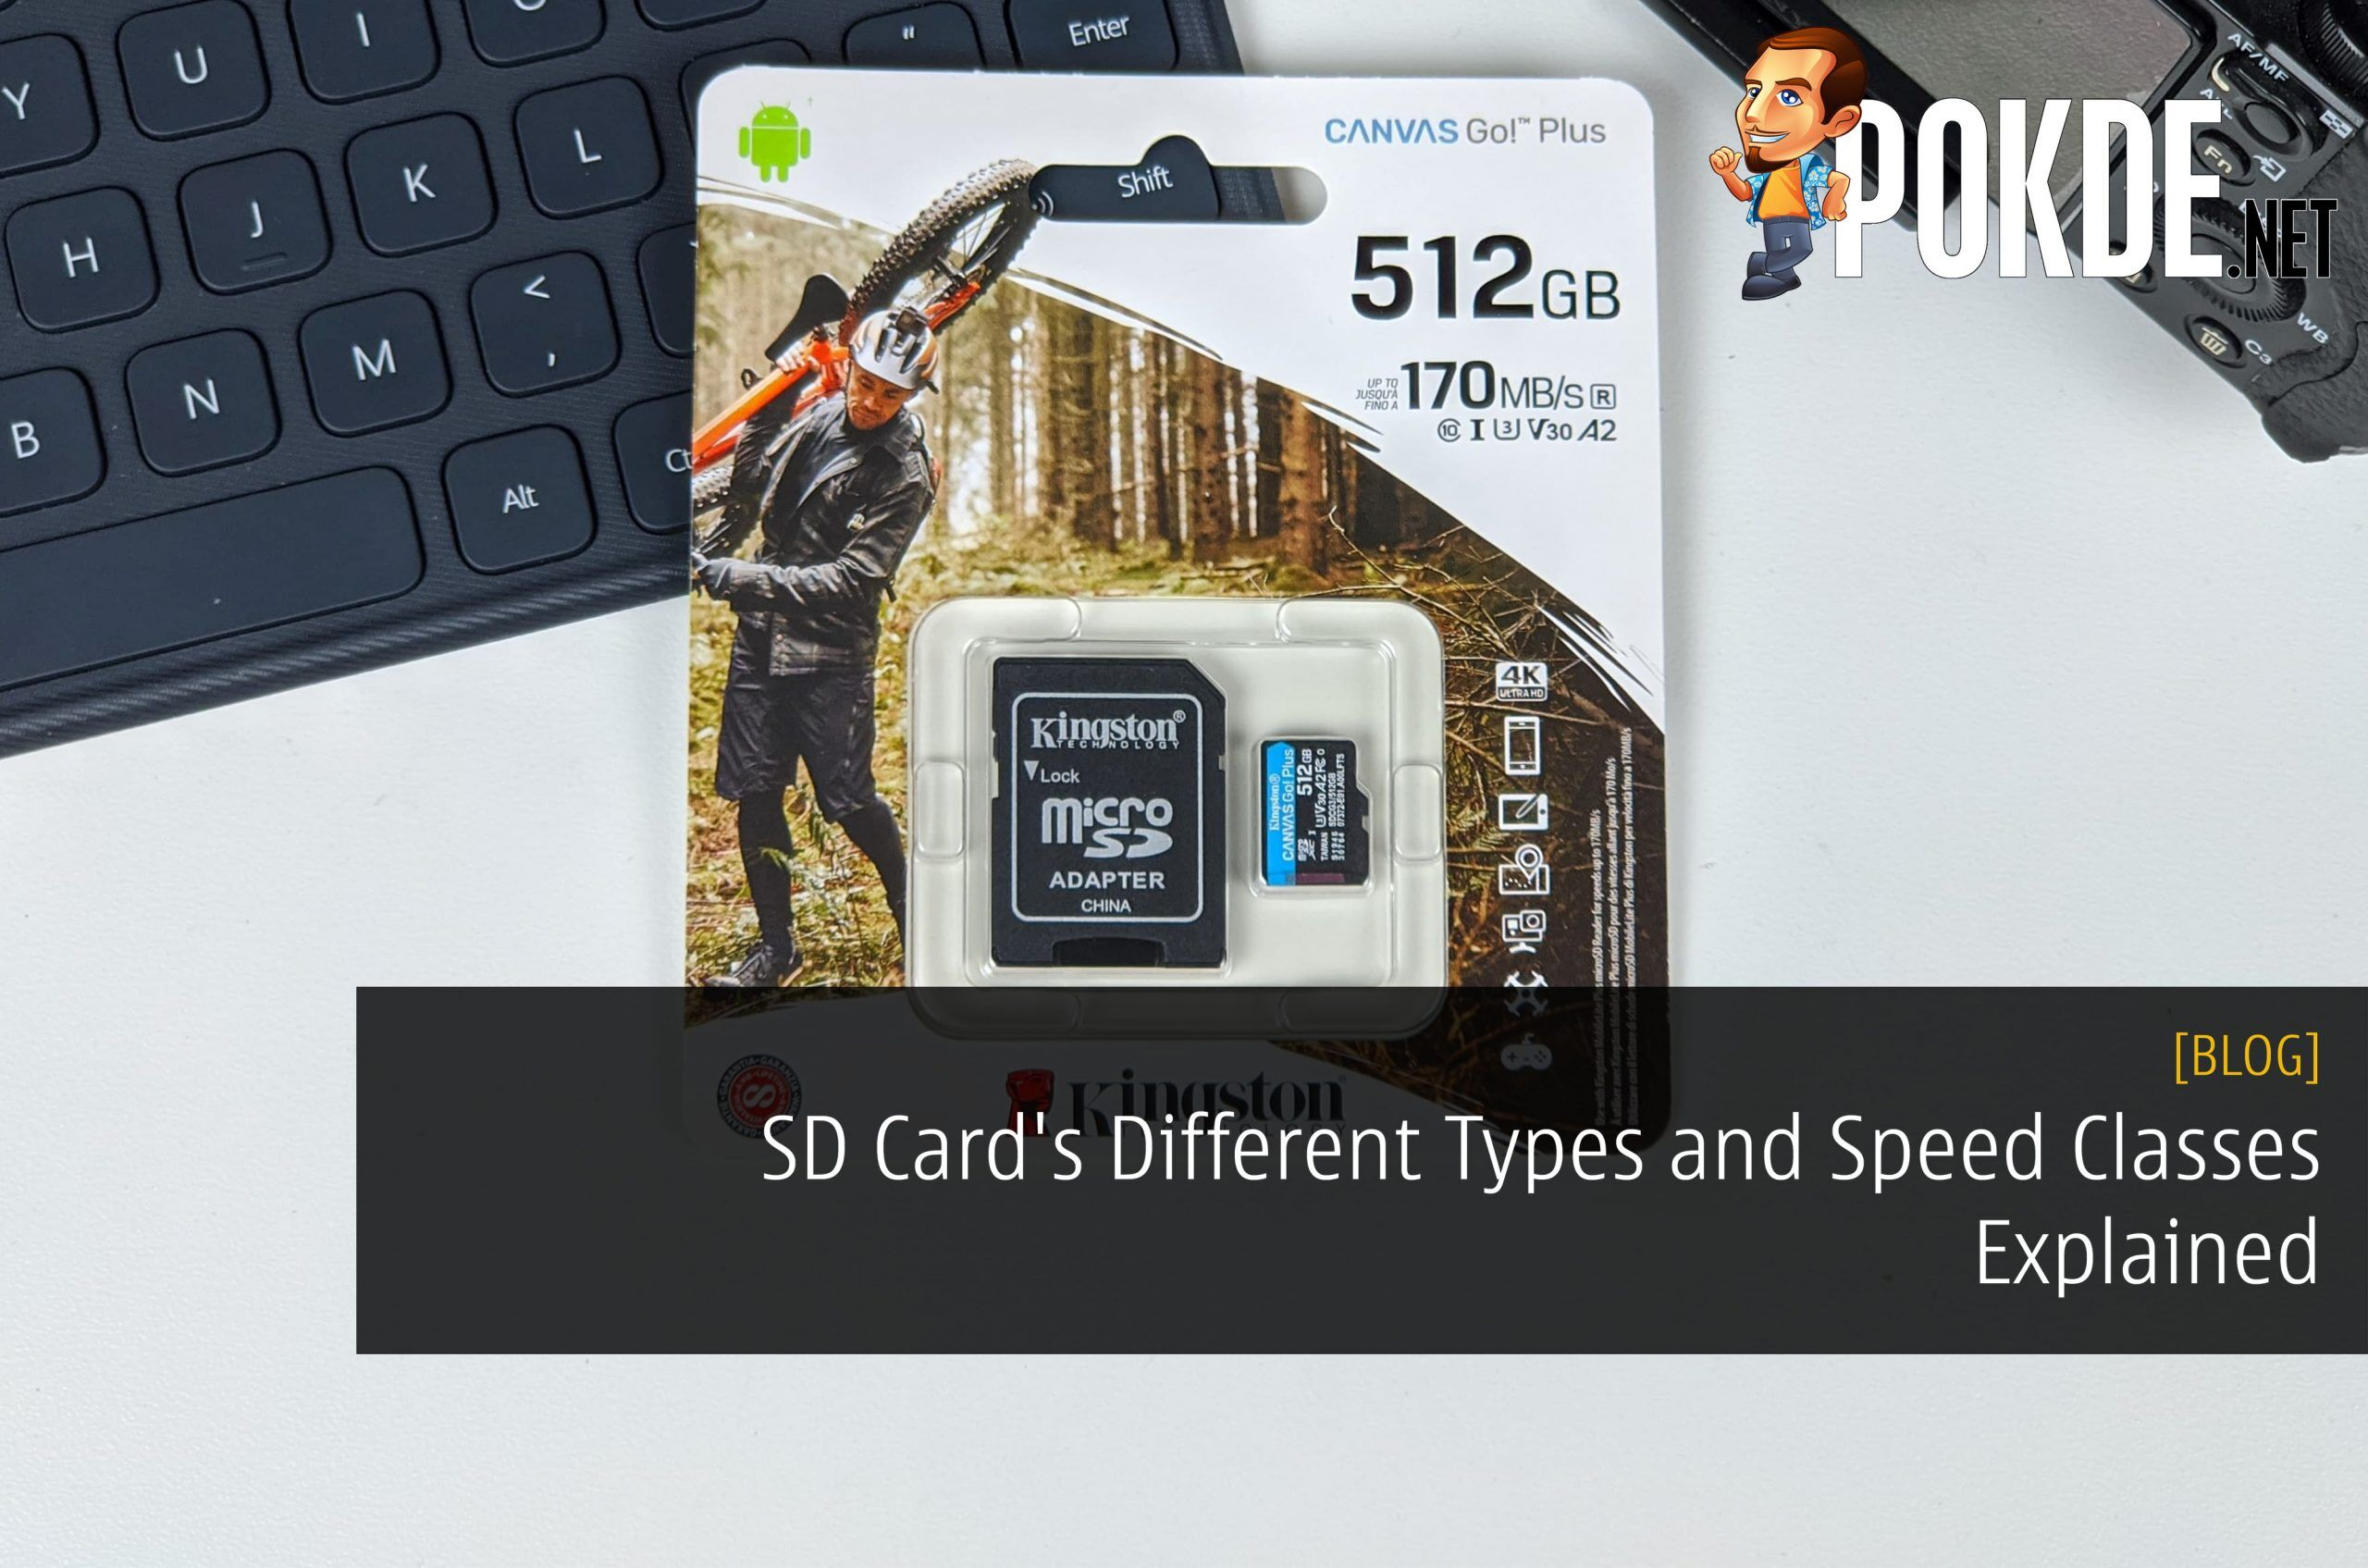 SD Card's Different Types and Speed Classes Explained 5